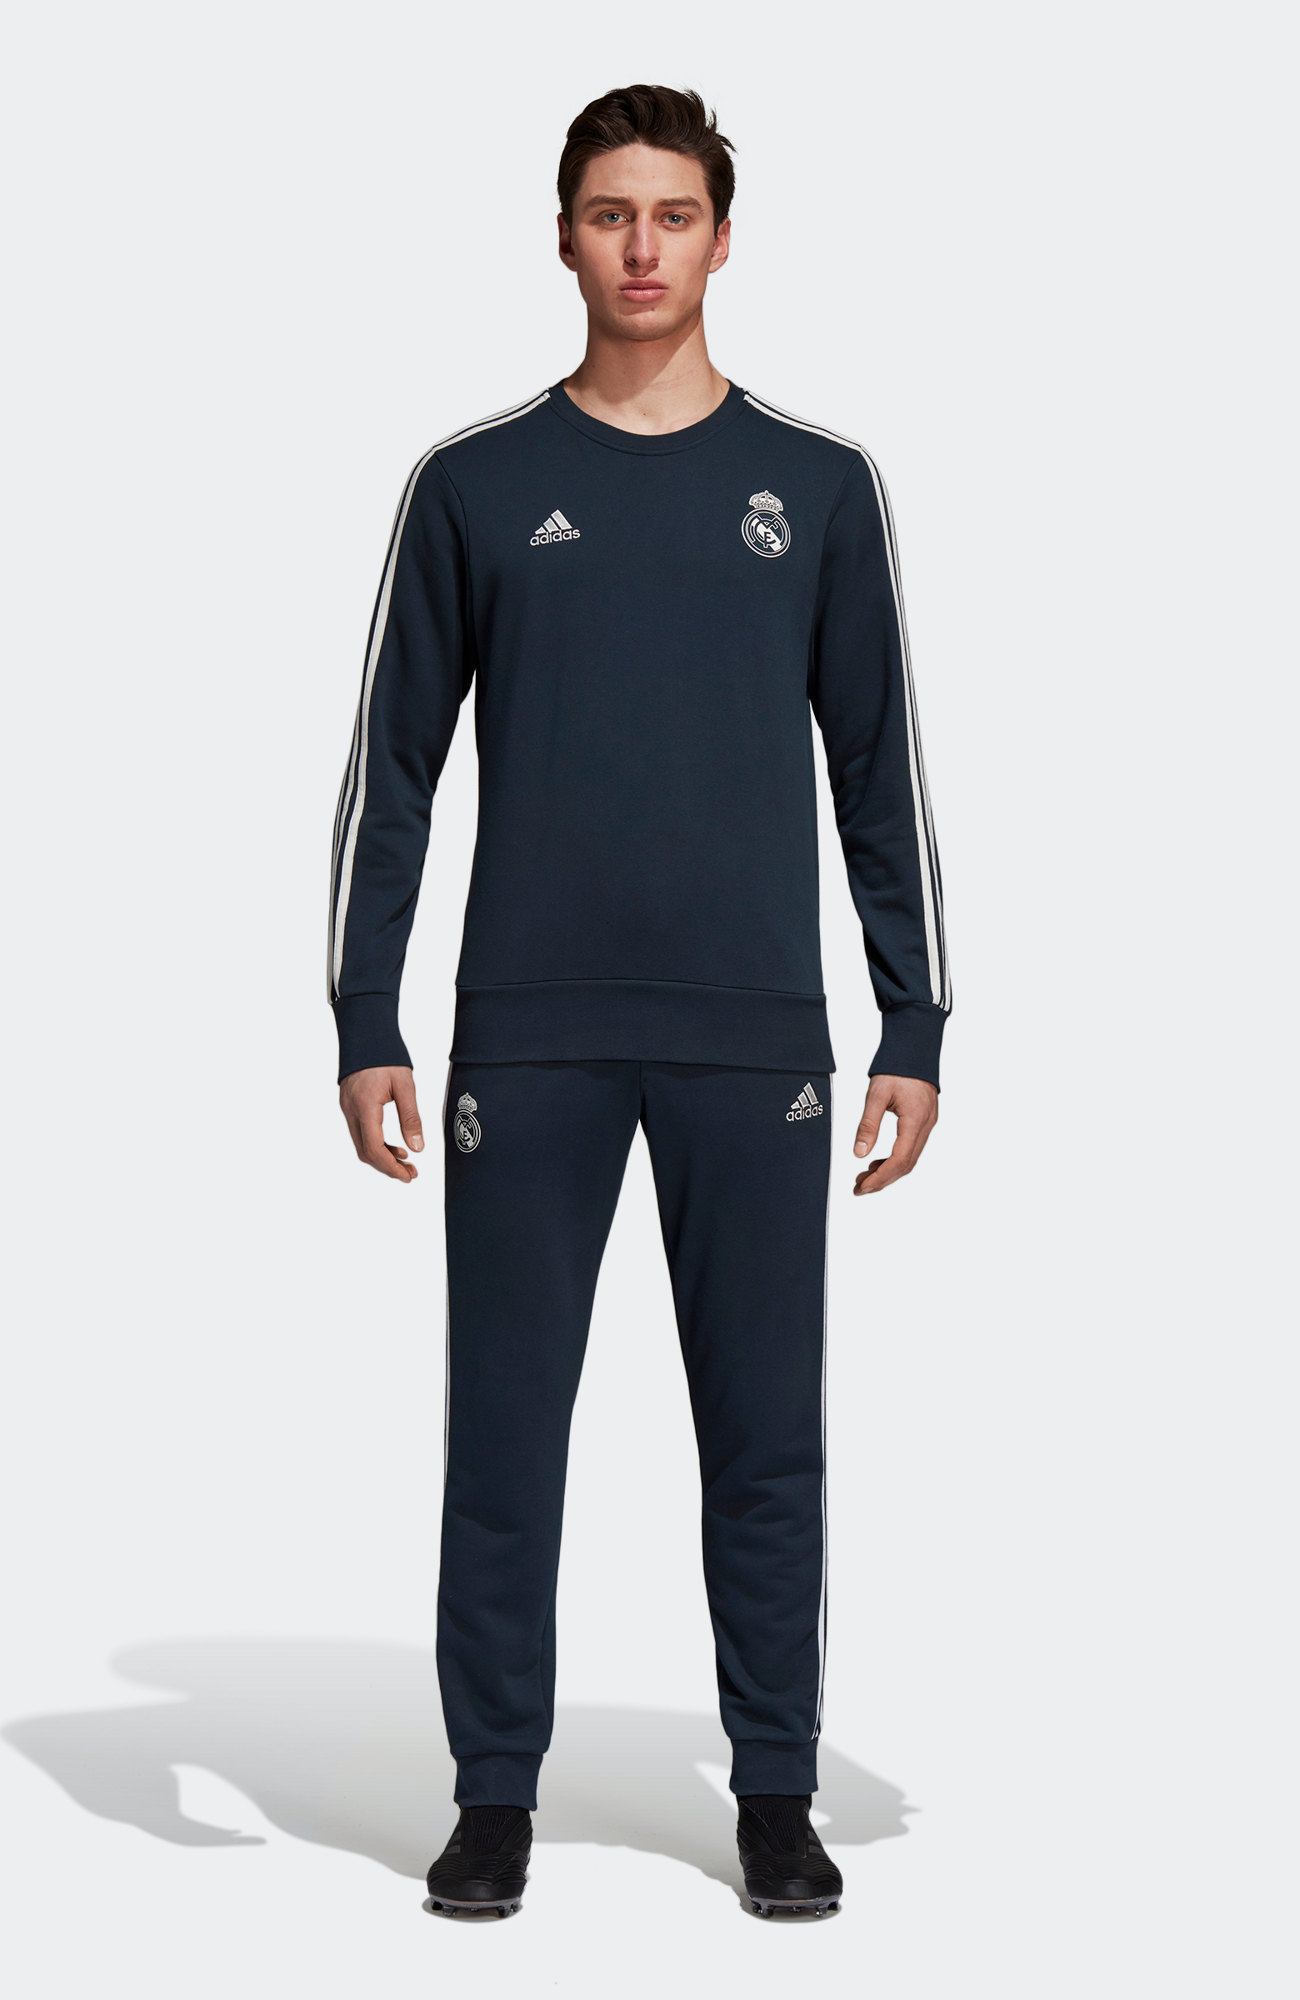 3e5c7eb899d Real Madrid Adidas Leisure Tracksuit 2018 19 Navy Cotton